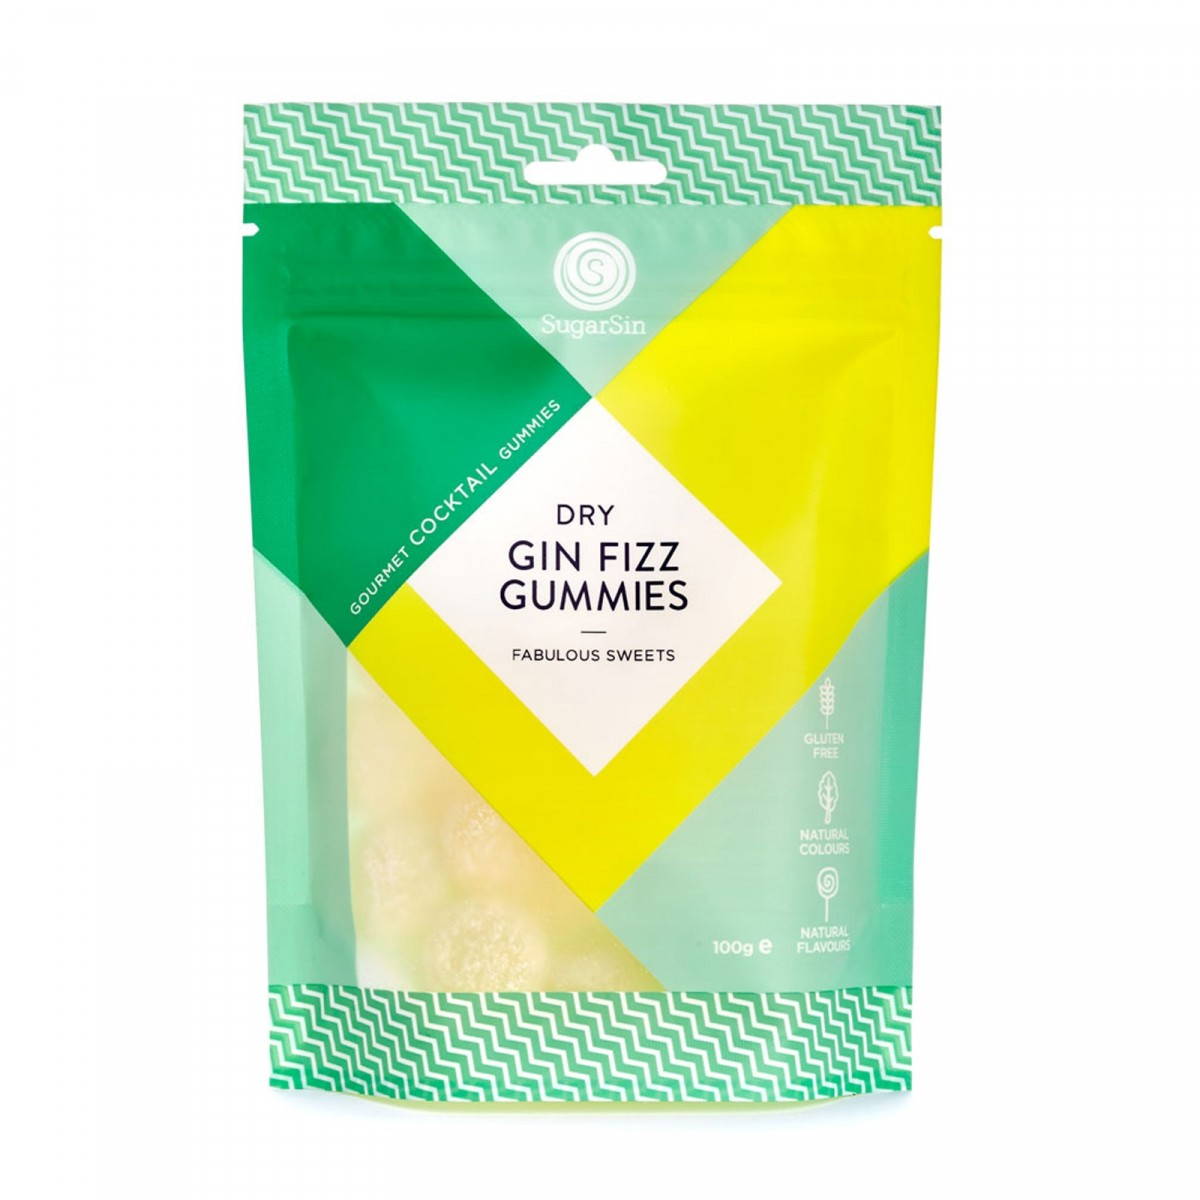 DRY GIN FIZZ GUMMIES - Not only are they snazzy sweets, they also taste of alcohol. What a win. A simple yet effective gift.